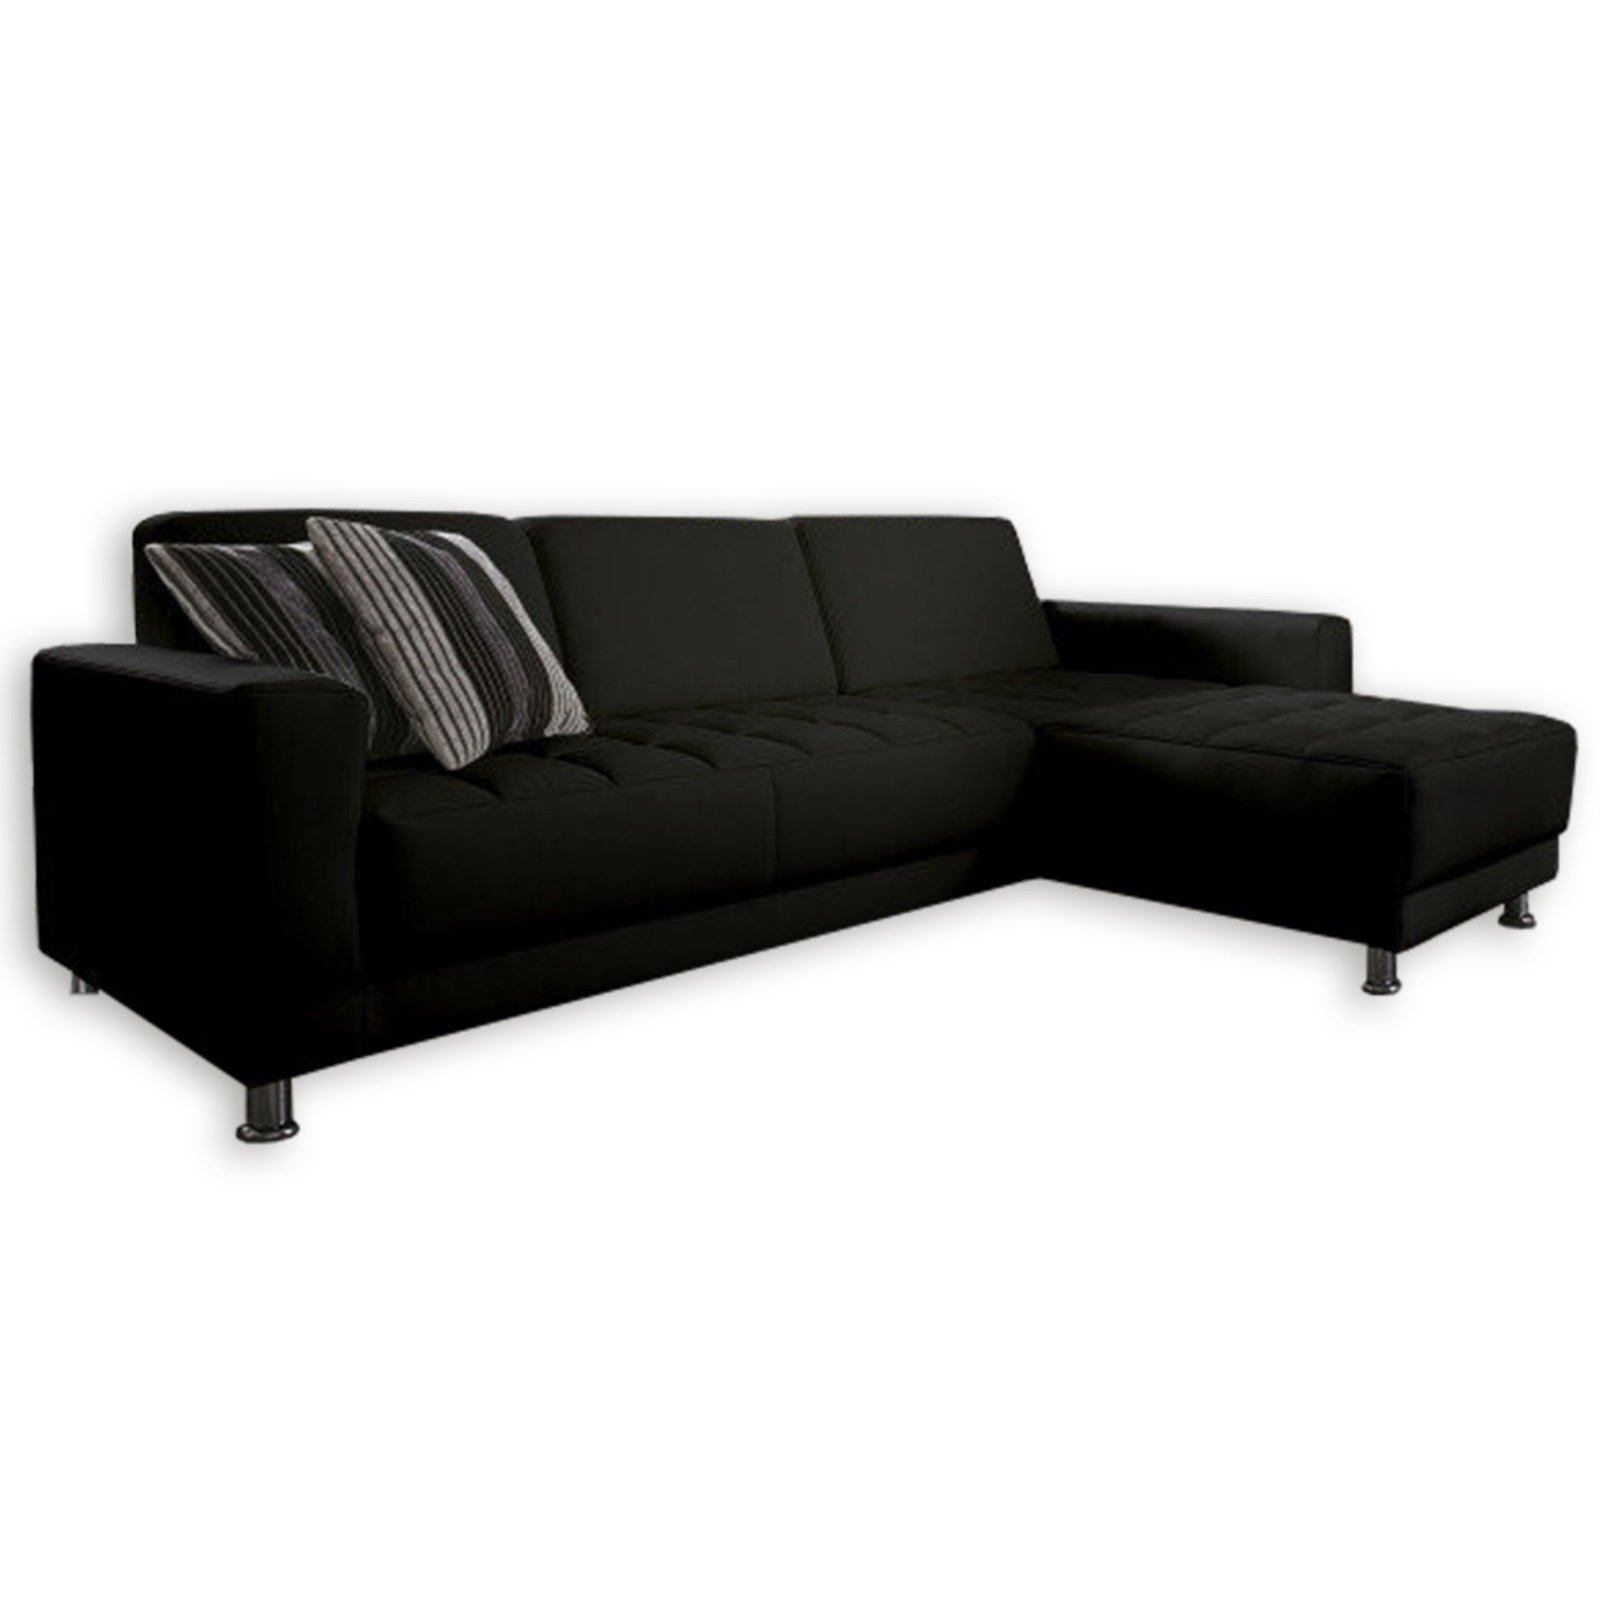 polsterecke schwarz kunstleder recamiere rechts ecksofas l form sofas couches. Black Bedroom Furniture Sets. Home Design Ideas